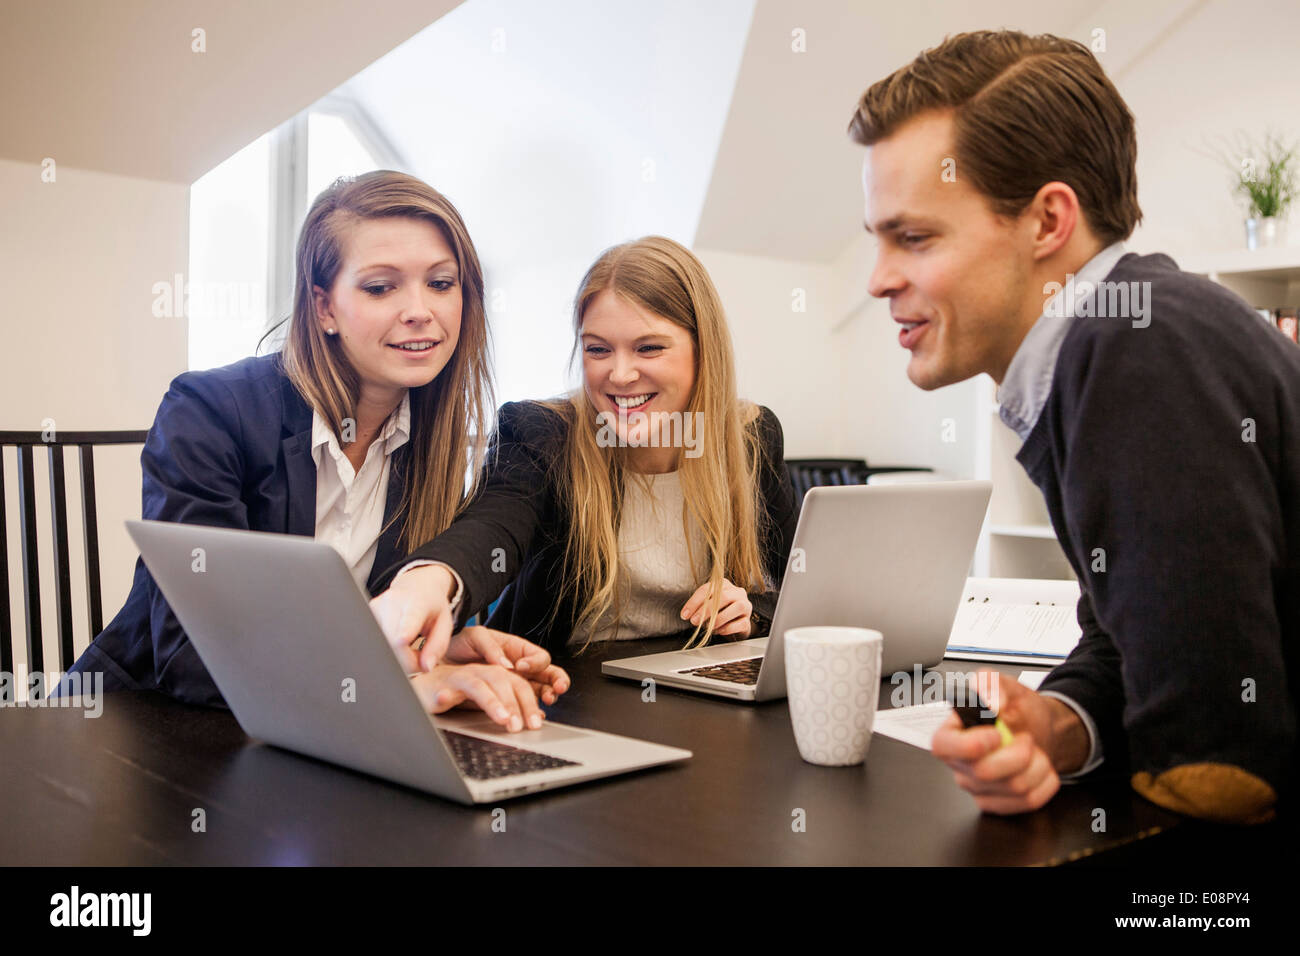 Business People Working Together On Laptop At Desk In Office Stock